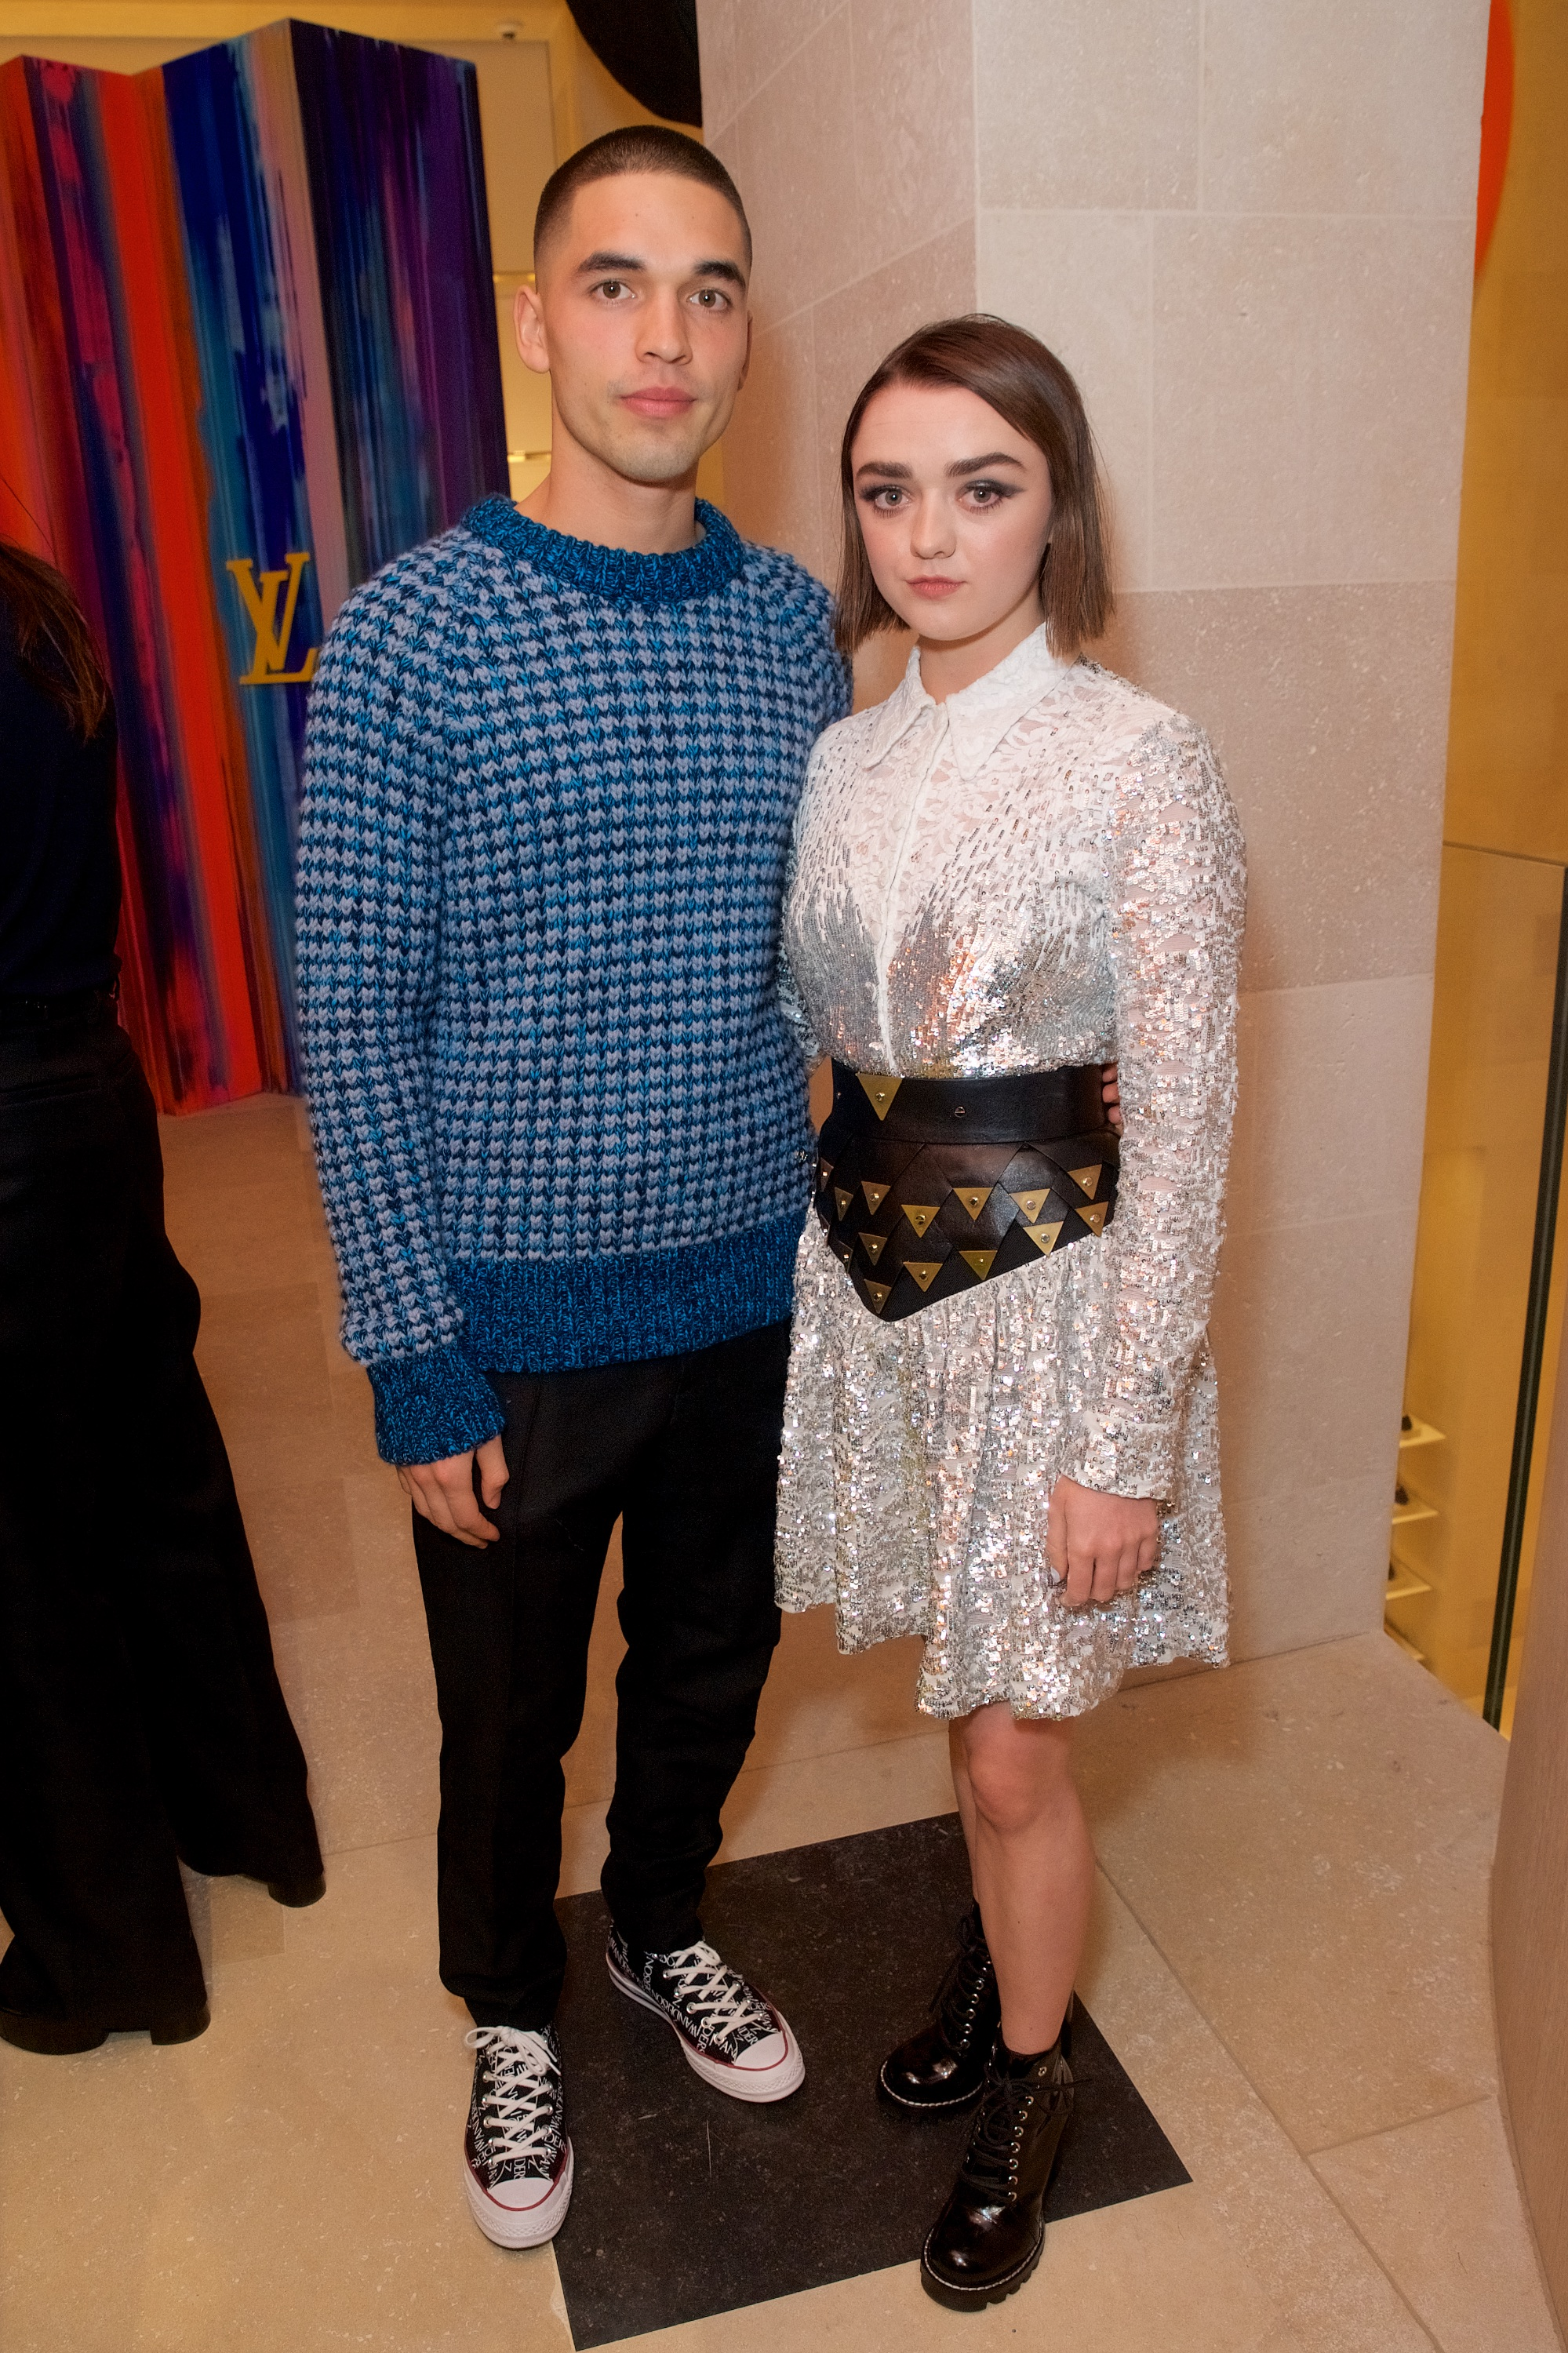 Reuben Selby and Maisie Williams at the Louis Vuitton New Bond Street opening